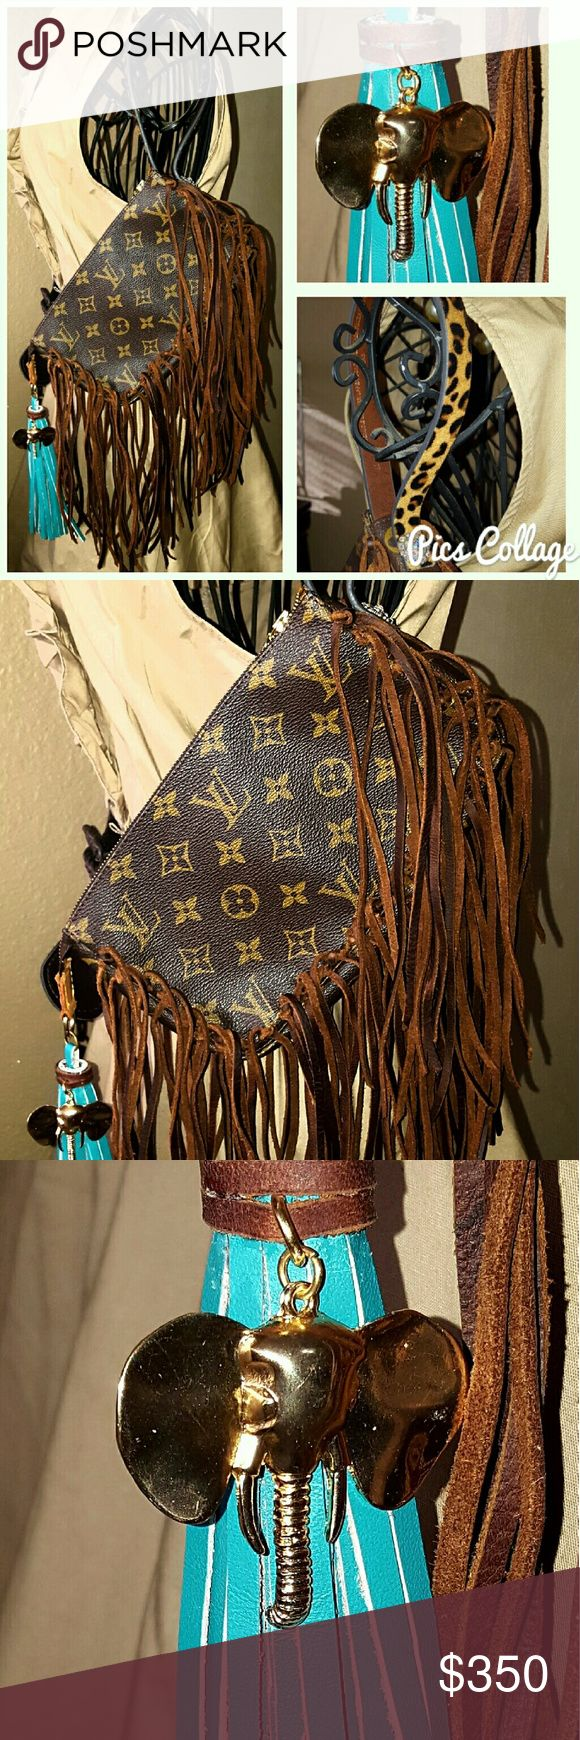 Authentic Vintage Louis Vuitton Wrislet Fully customized long brown fringe leopard strap and elephant charm with turquoise tassel Louis Vuitton Bags Clutches & Wristlets